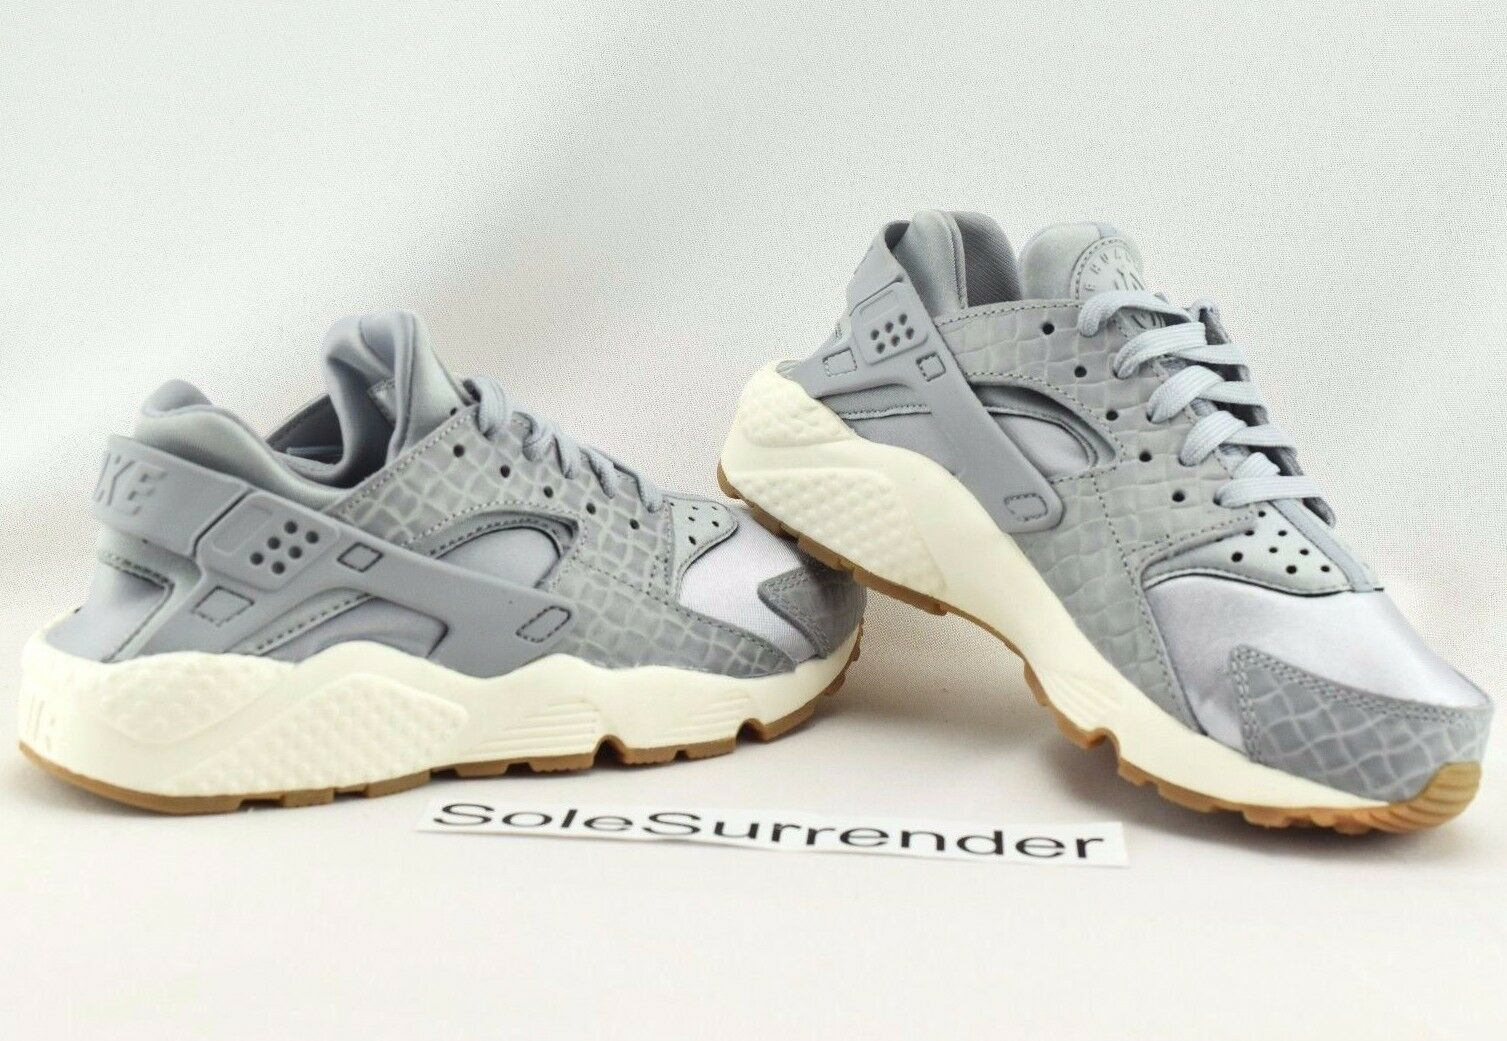 Nike Wmns Air Huarache Run PRM Premium Grey Gum Running shoes 683818-012